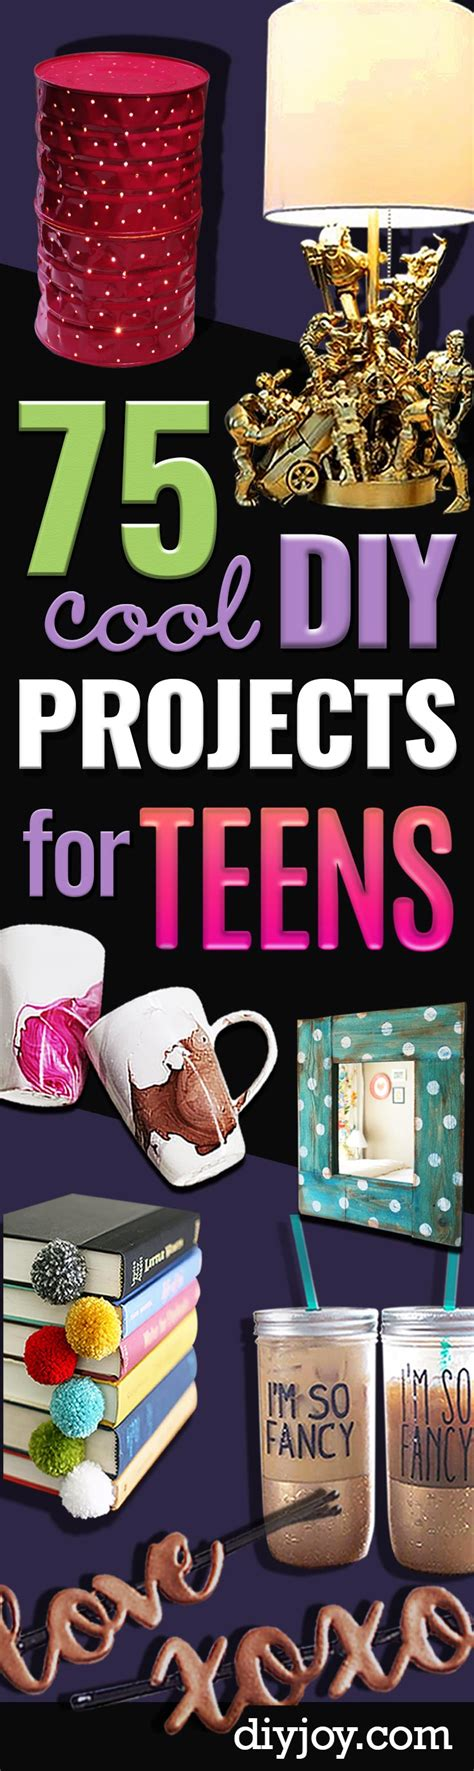 summer diy projects for college students 75 cool diy projects for teenagers